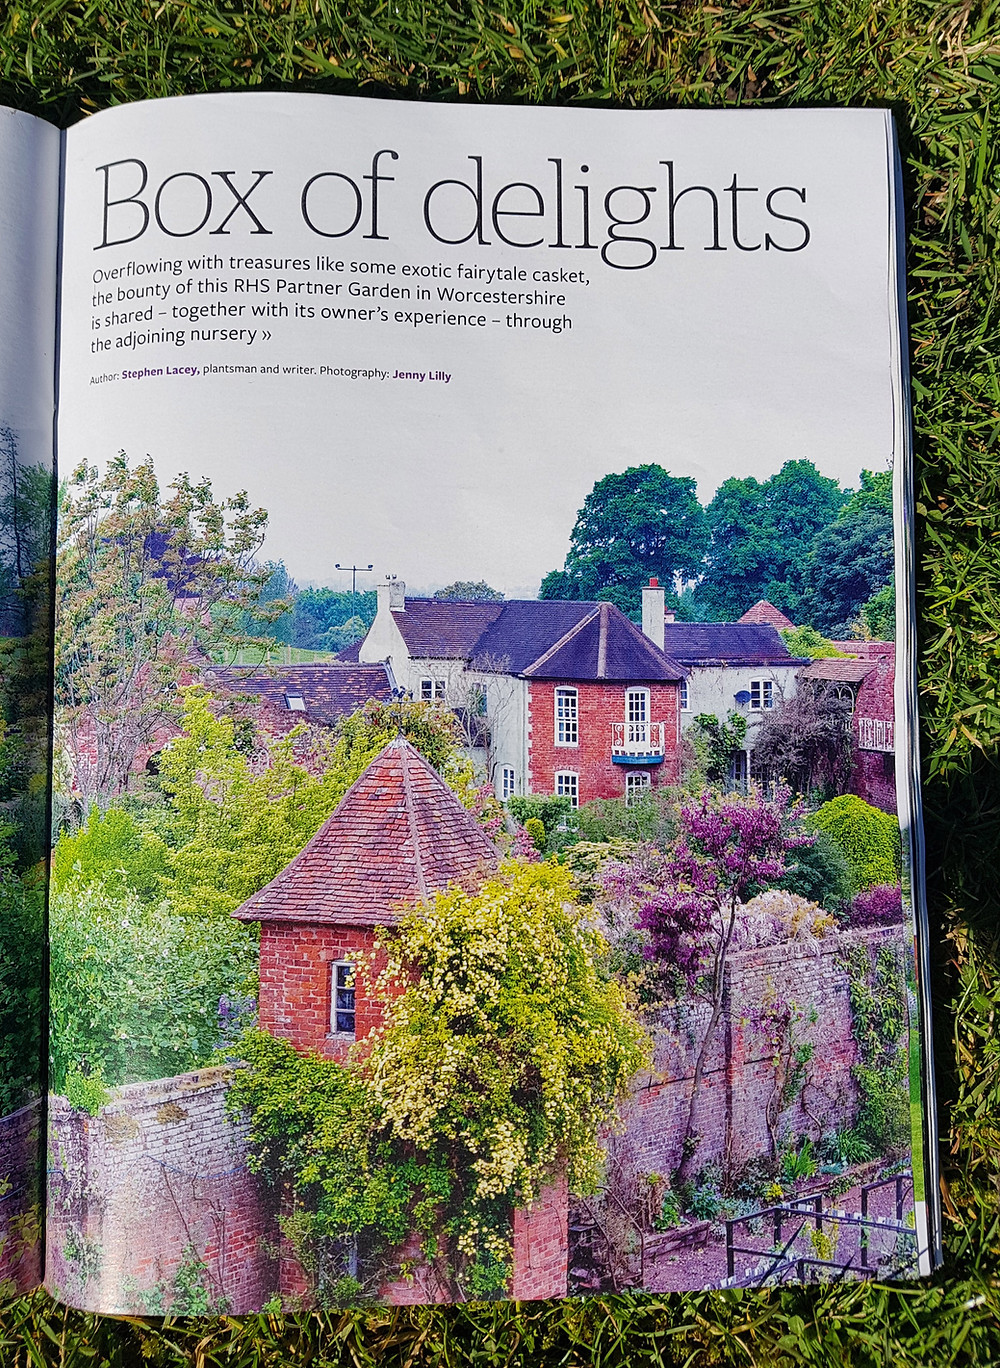 Box Of Delights - Overflowing with treasures like some exotic fairytale casket, the bounty of this RHS Partner Garden in Worcestershire is shared - together with its owner's experience - through the adjoining nursery.